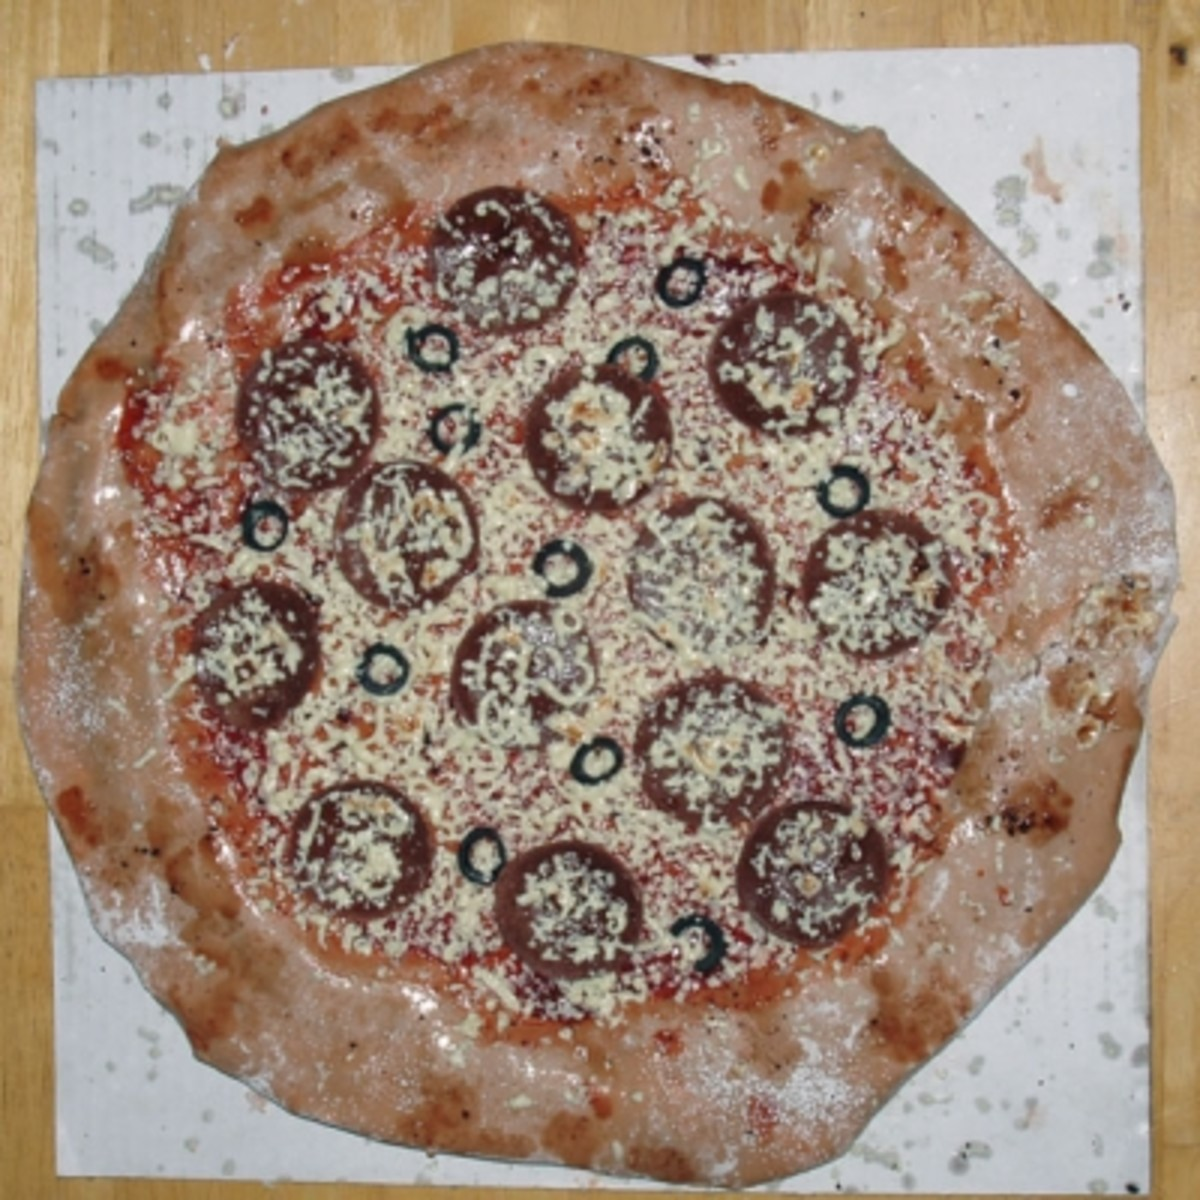 Top View of the Pizza Cake Without Box